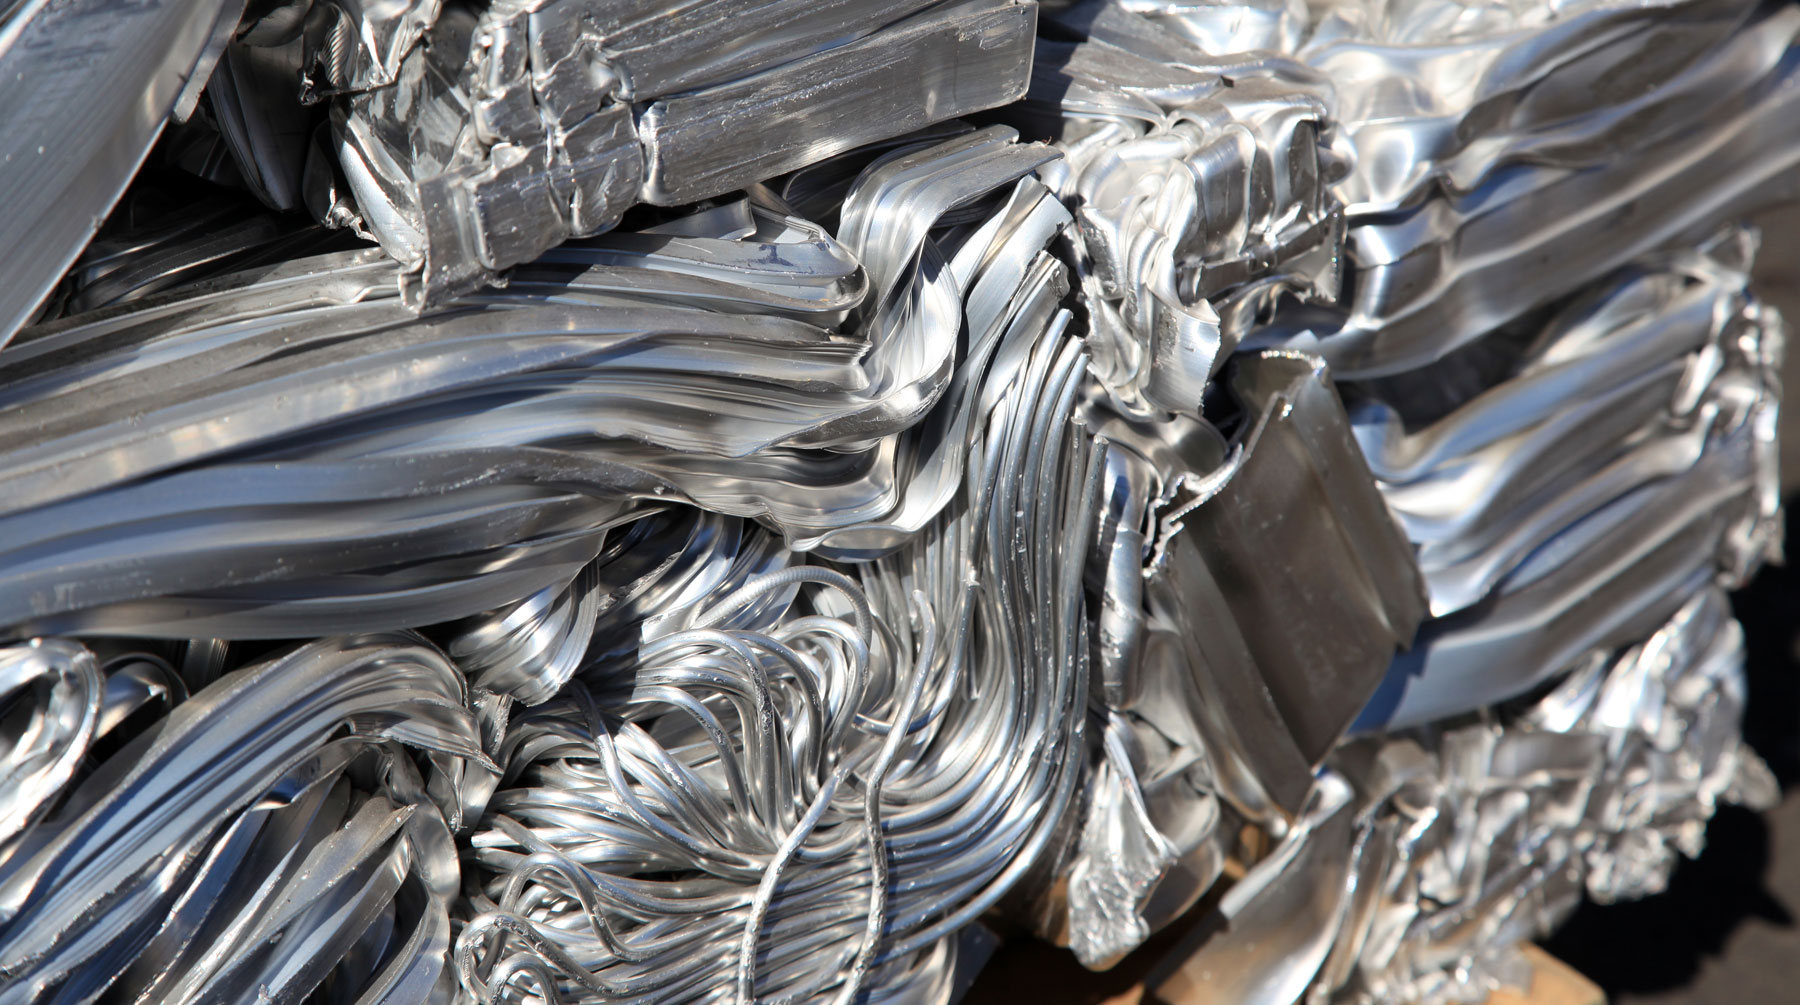 Price Of Scrap Copper Wire Per Pound | John Zubick Limited Scrap Metals And Recycling